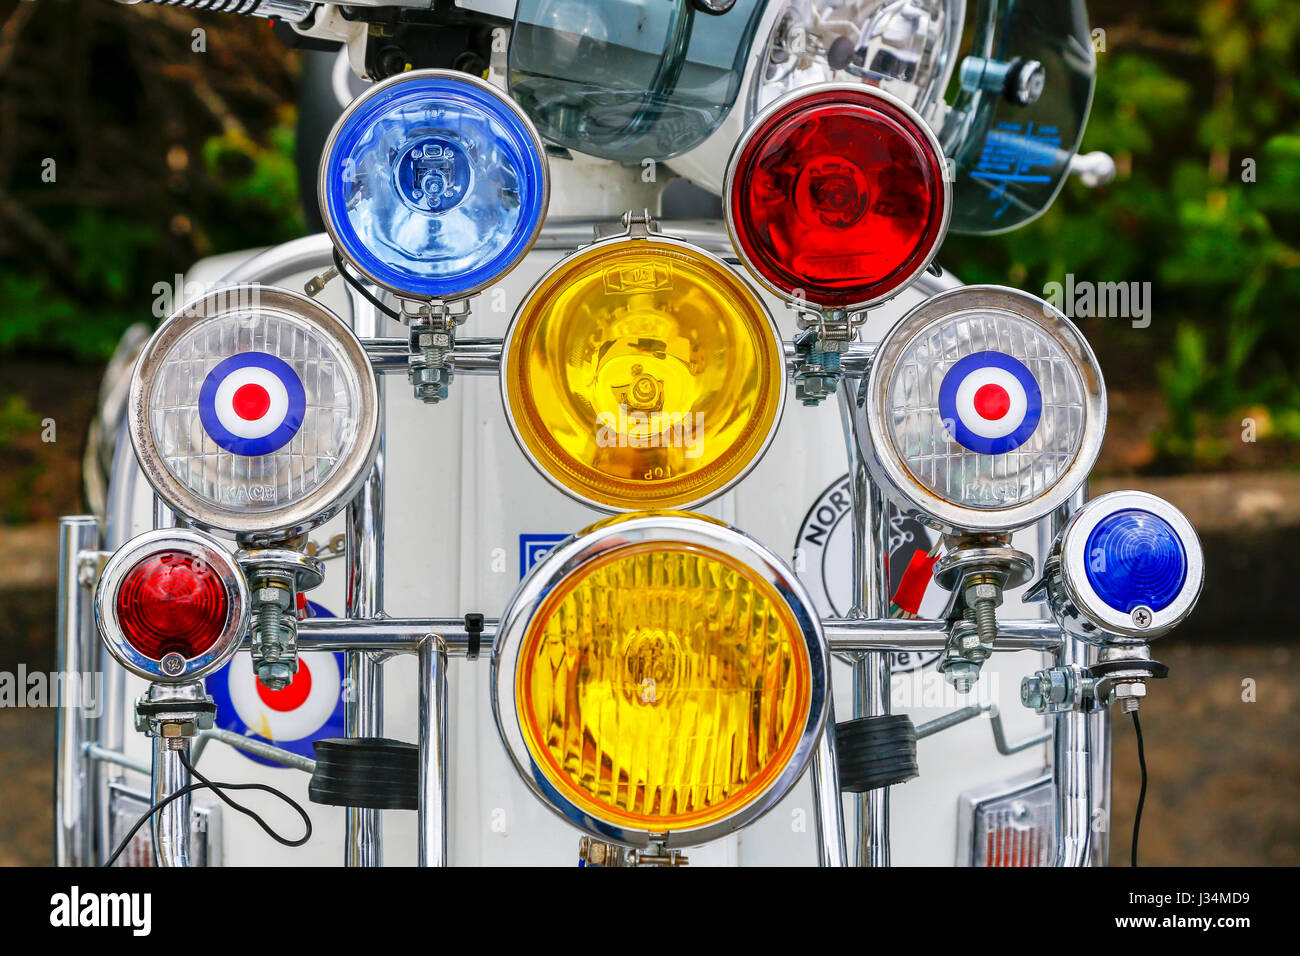 Headlights and spotlights on a Scooter decorated in Mod design - Stock Image